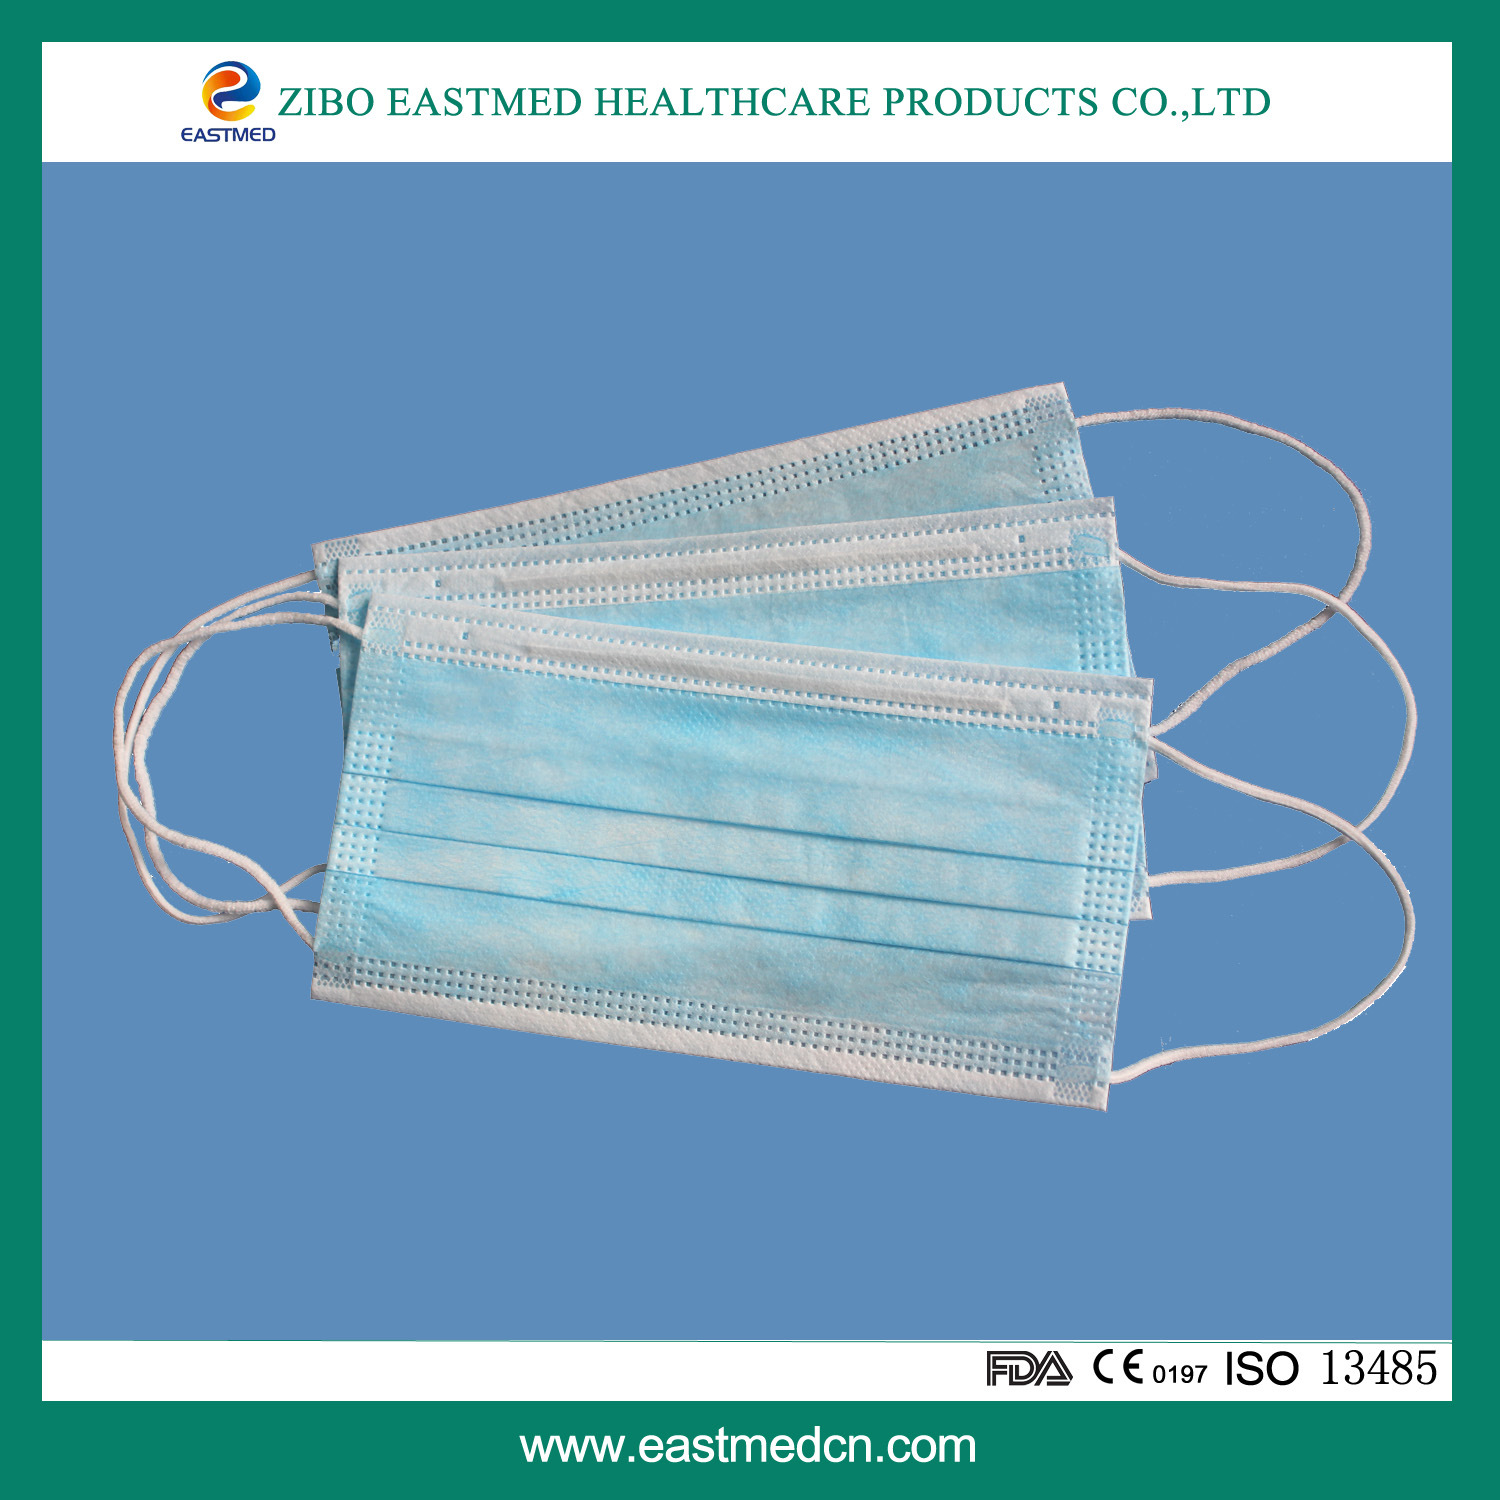 3ply Non-Woven Surgical Face Mask/Disposable Face Mask